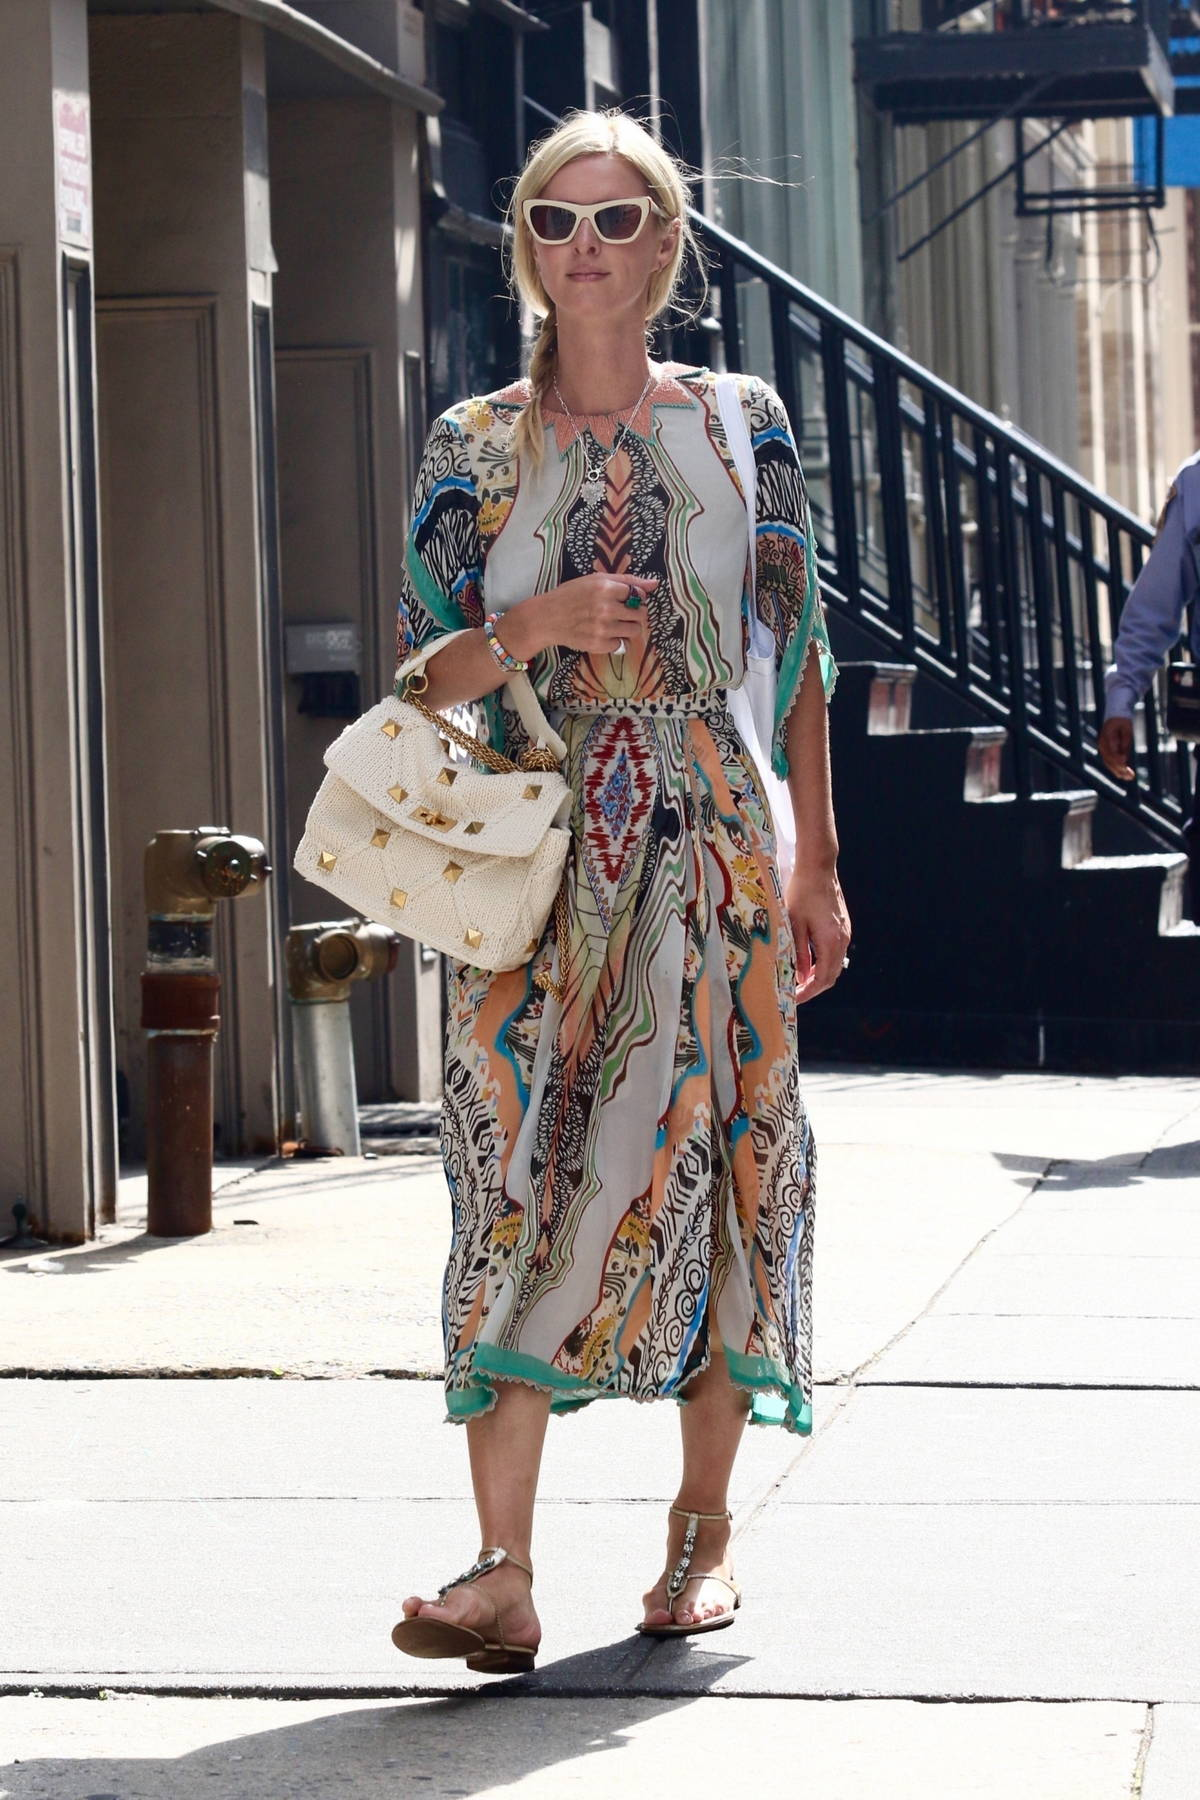 Nicky Hilton looks stylish in a colorful summery dress while out shopping in Manhattan's Soho area, New York City